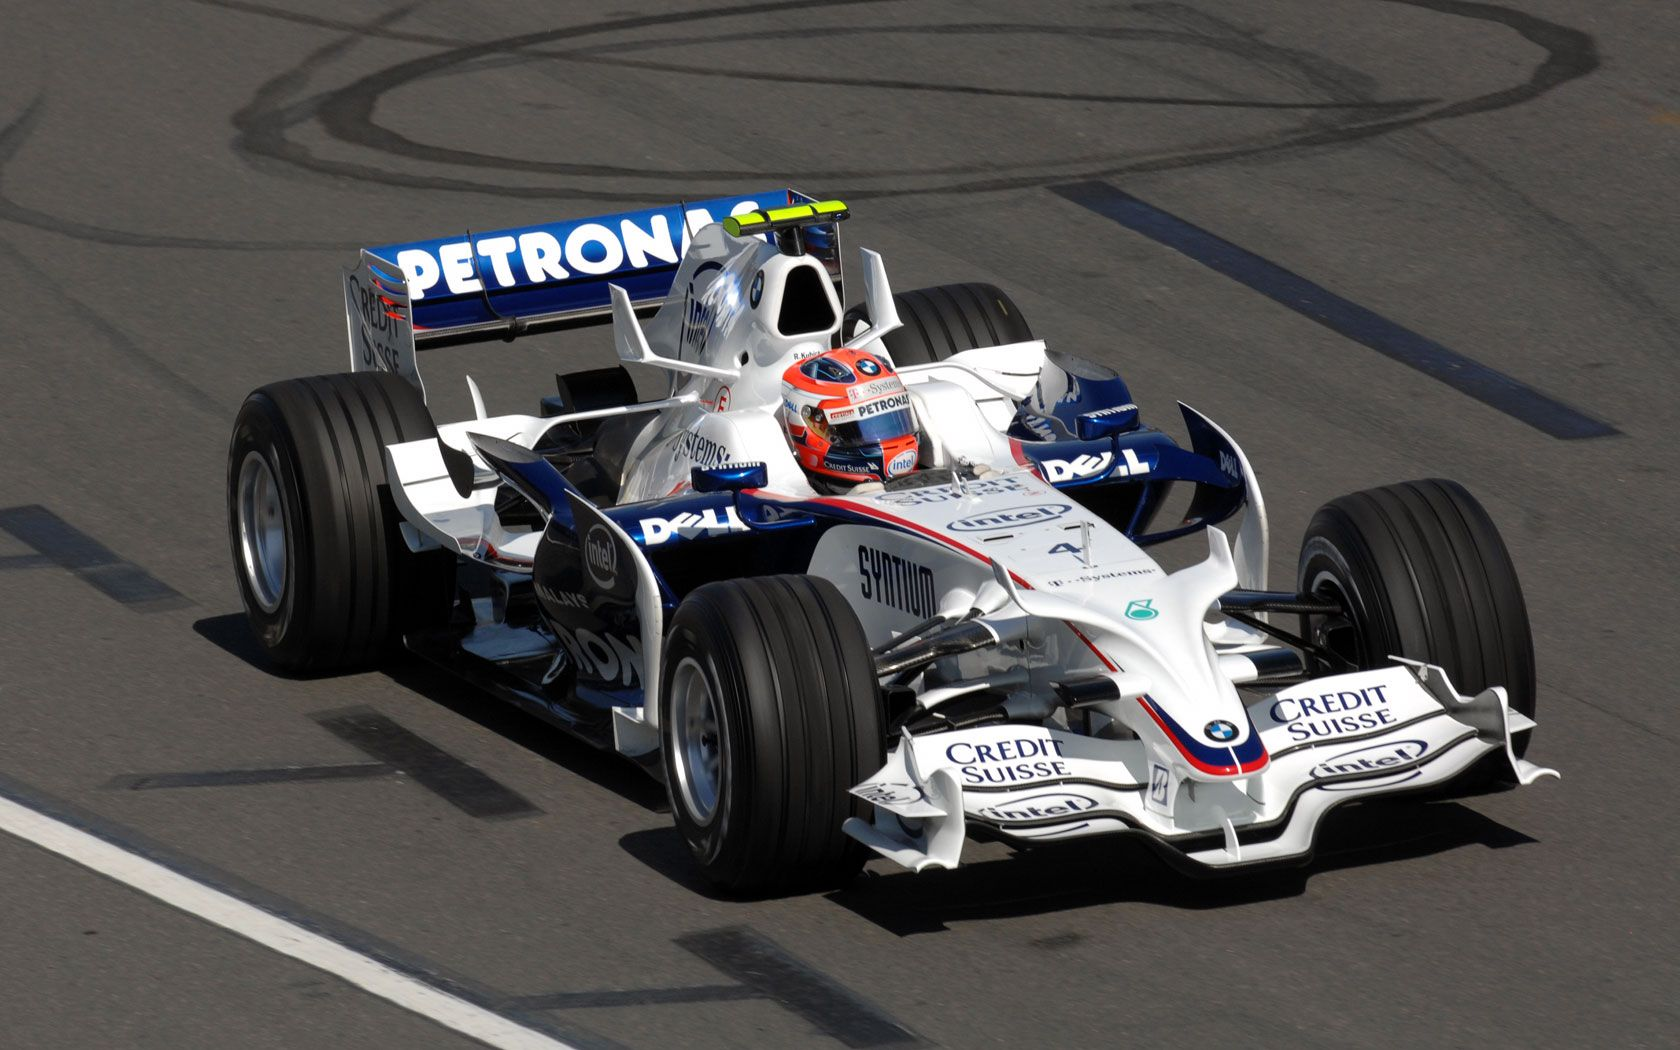 2008 bmw sauber robert kubica 2008 formu a 1 for Kubica cars